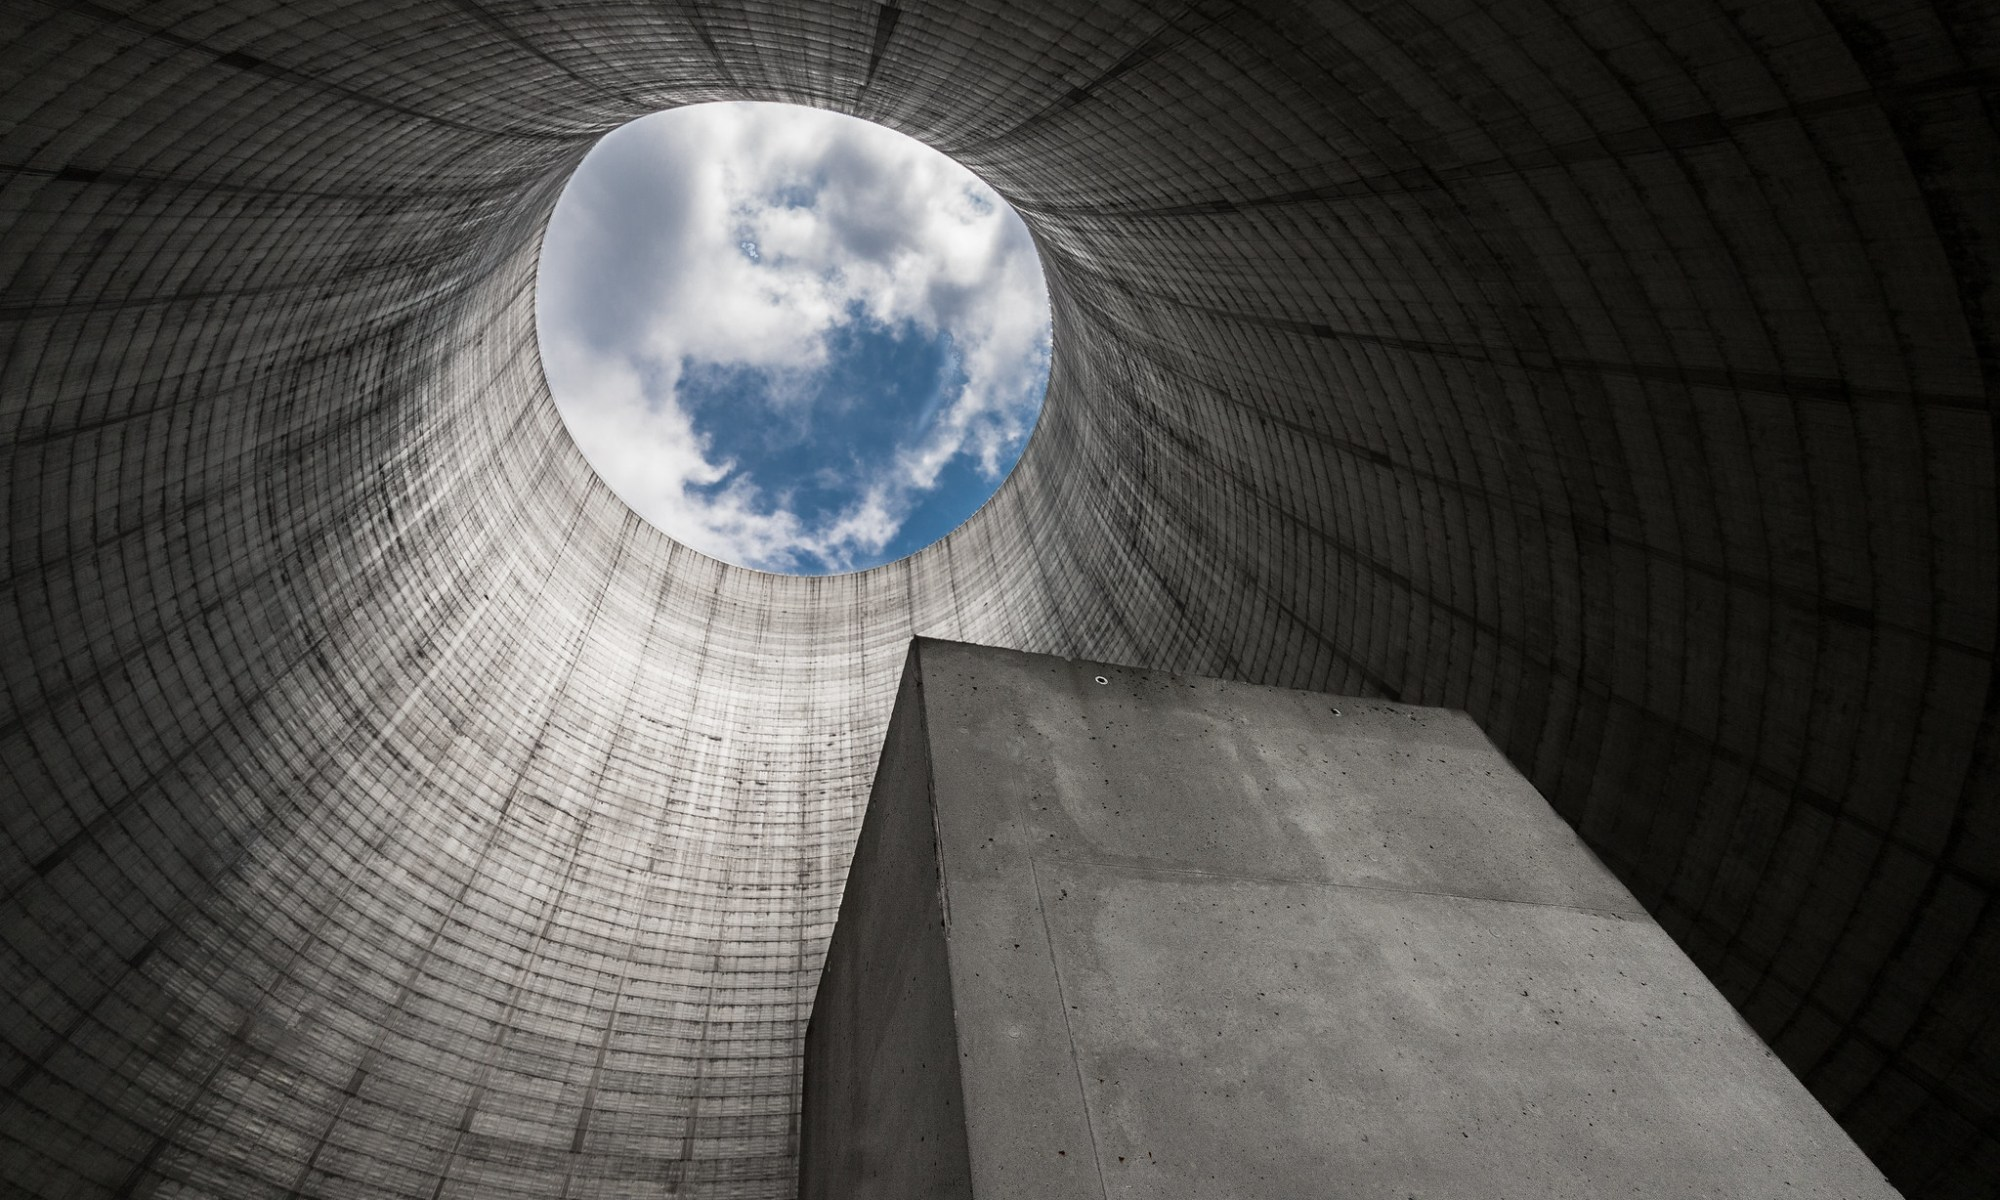 Nuclear Power Plant Cooling Tower photo image